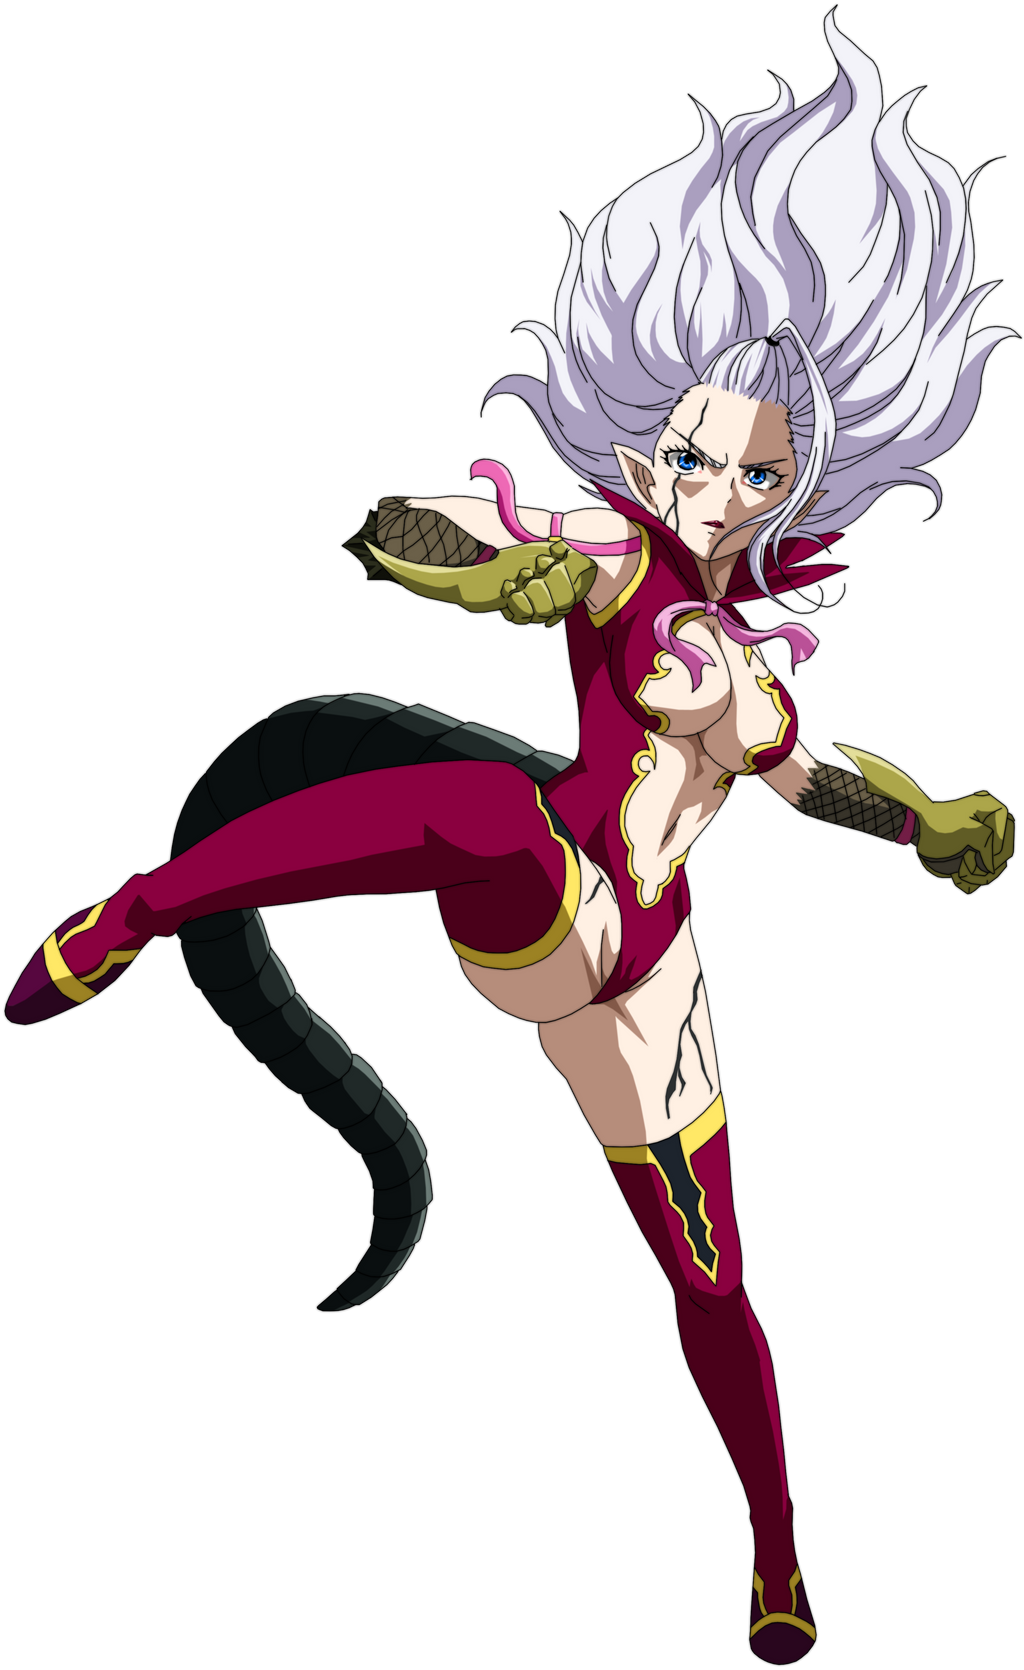 mirajane strauss satan soul images galleries with a bite. Black Bedroom Furniture Sets. Home Design Ideas